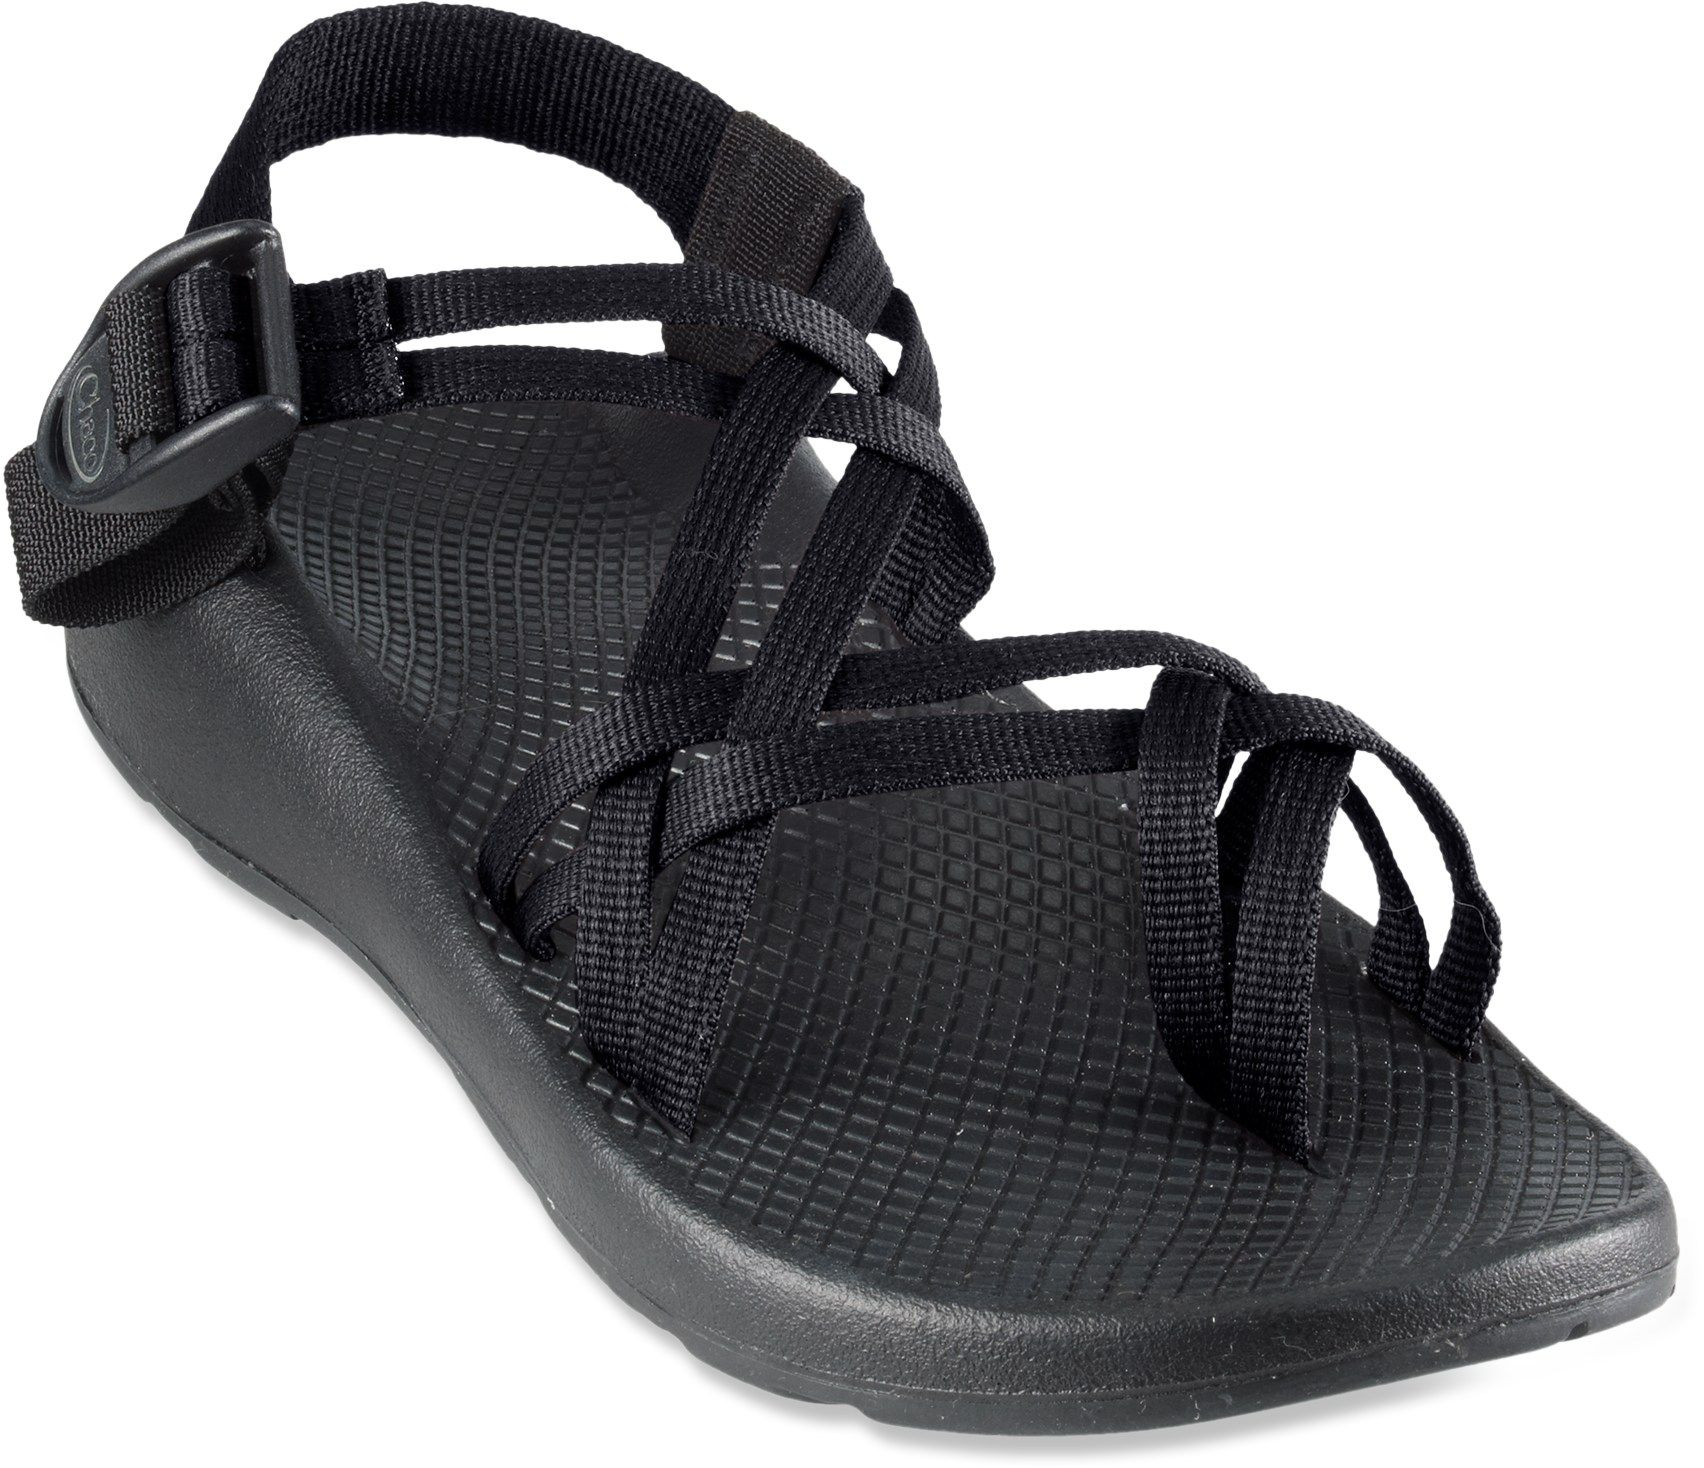 Chaco Women S Zx 2 Yampa Sandals Black 6 Medium Free